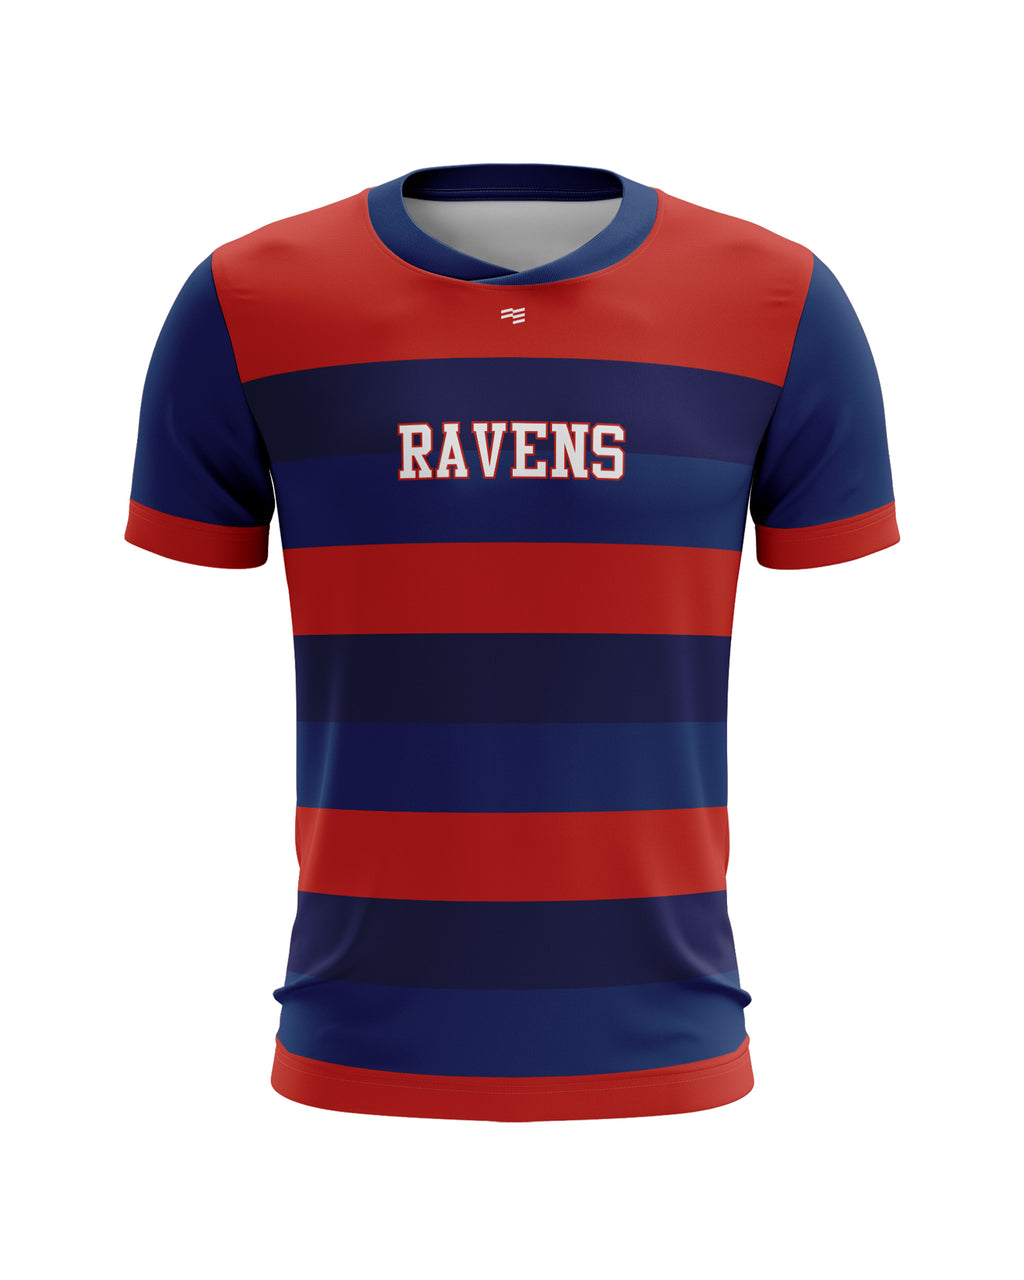 Ravens Rugby Jersey - Mens